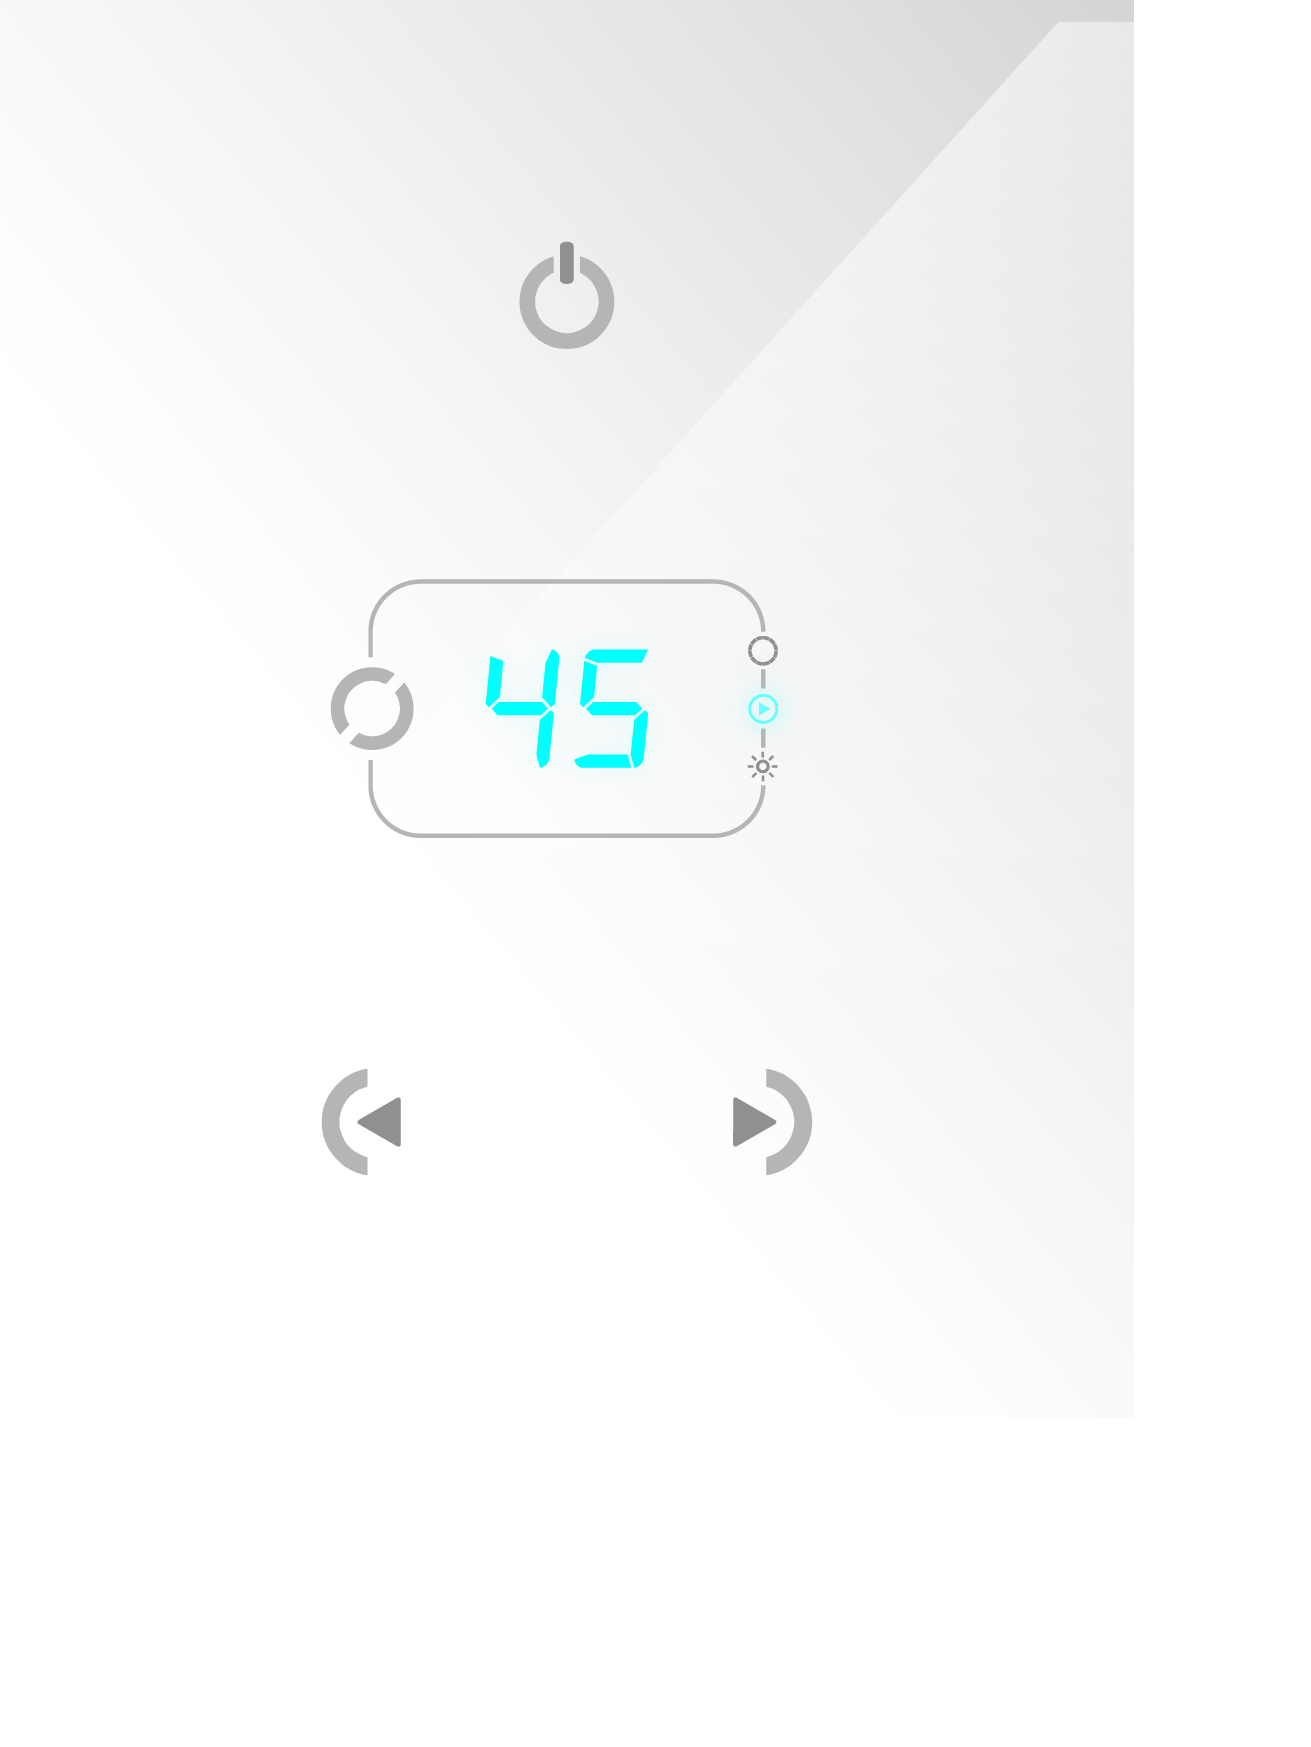 512ch, USB, GLASS, 4 BUTTONS, 99 SCENES